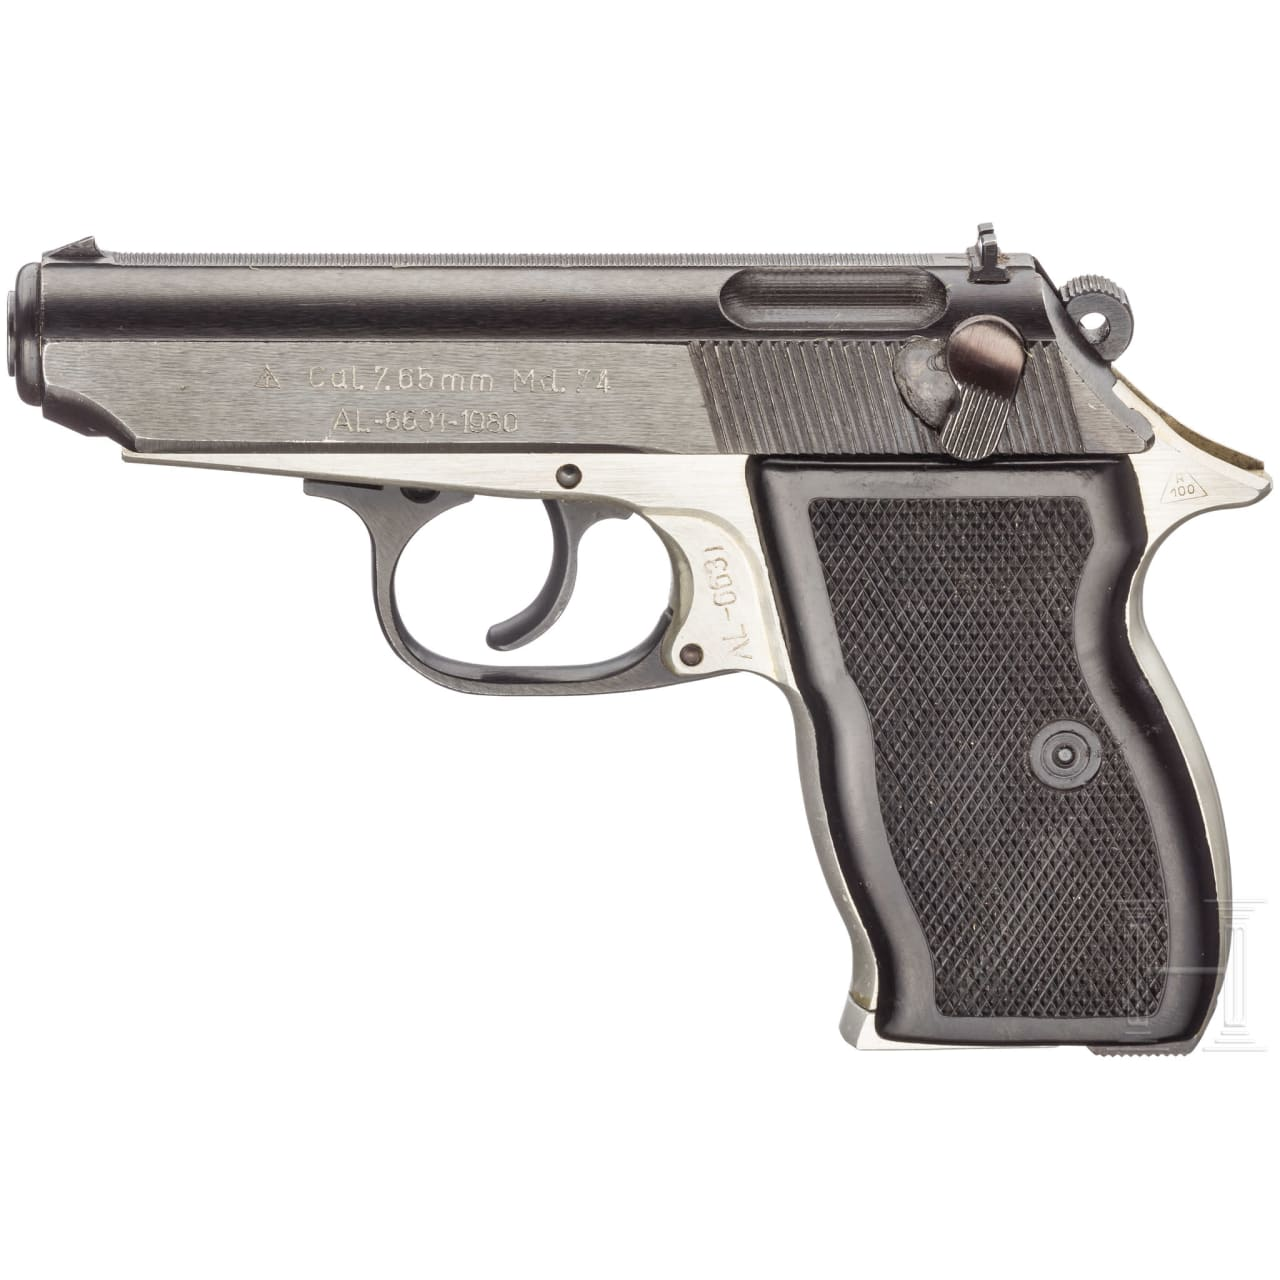 Pistole Mod. 74, with holster, Securitate, Polizei und Militär